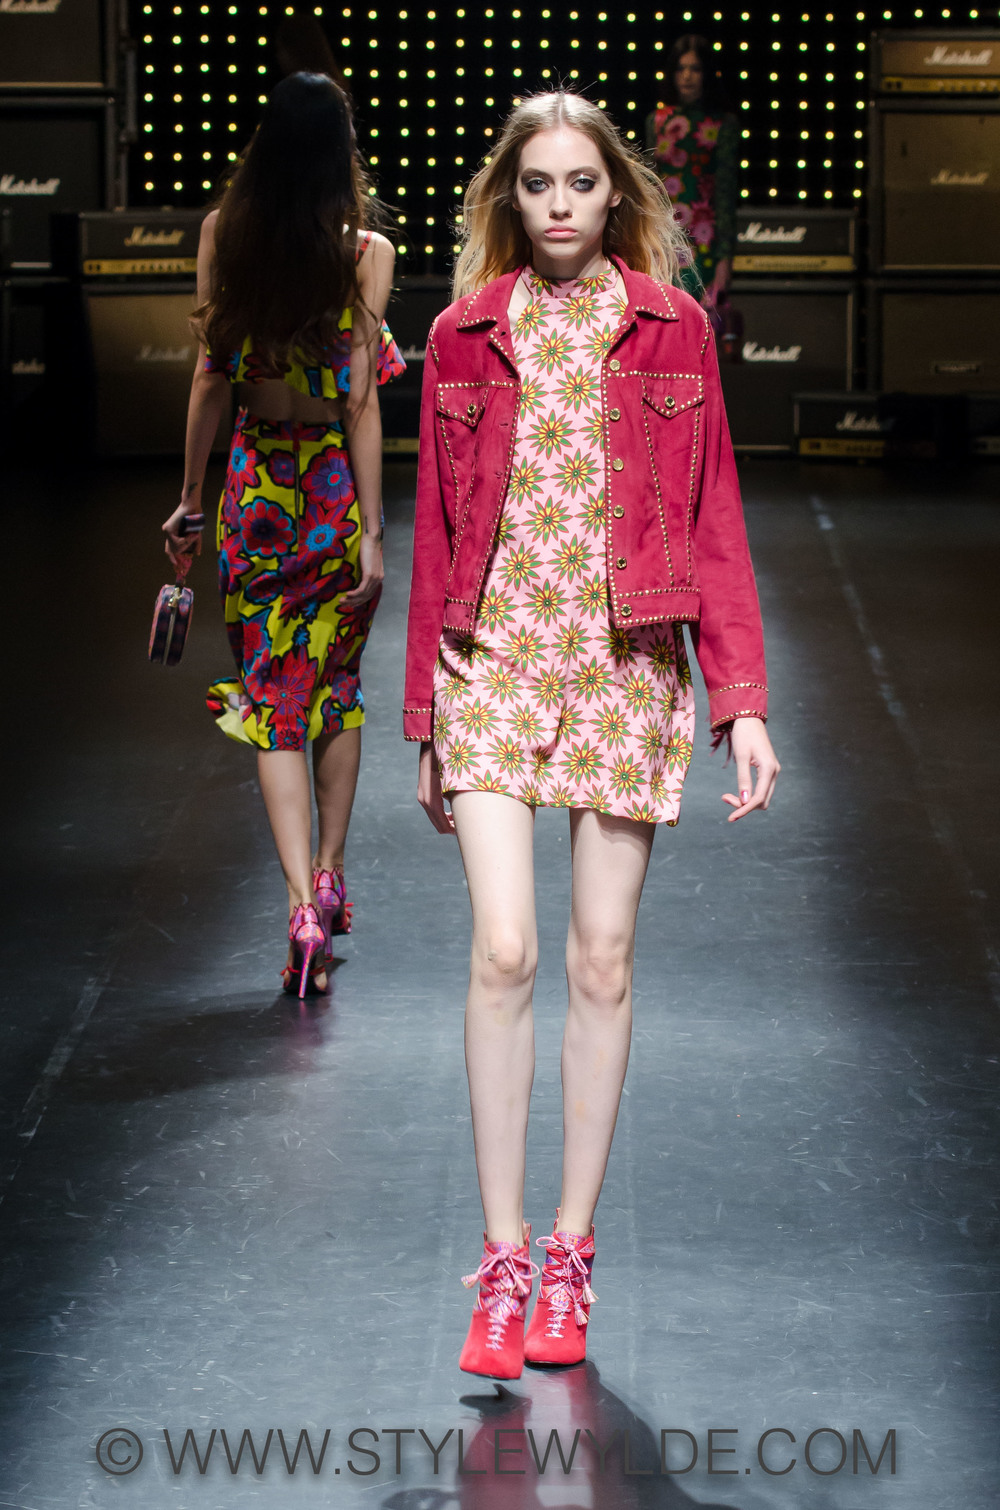 stylewylde_HouseofHolland_SS15 (11 of 68).jpg